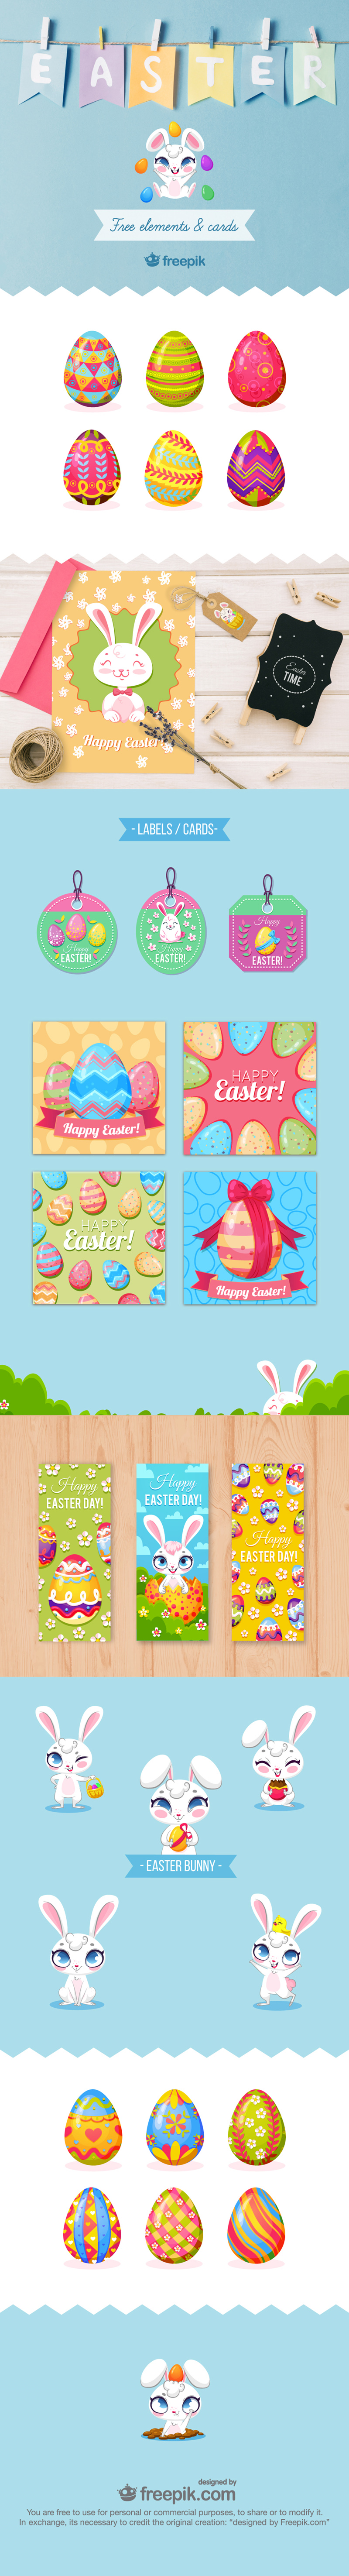 free easter graphics from Freepik